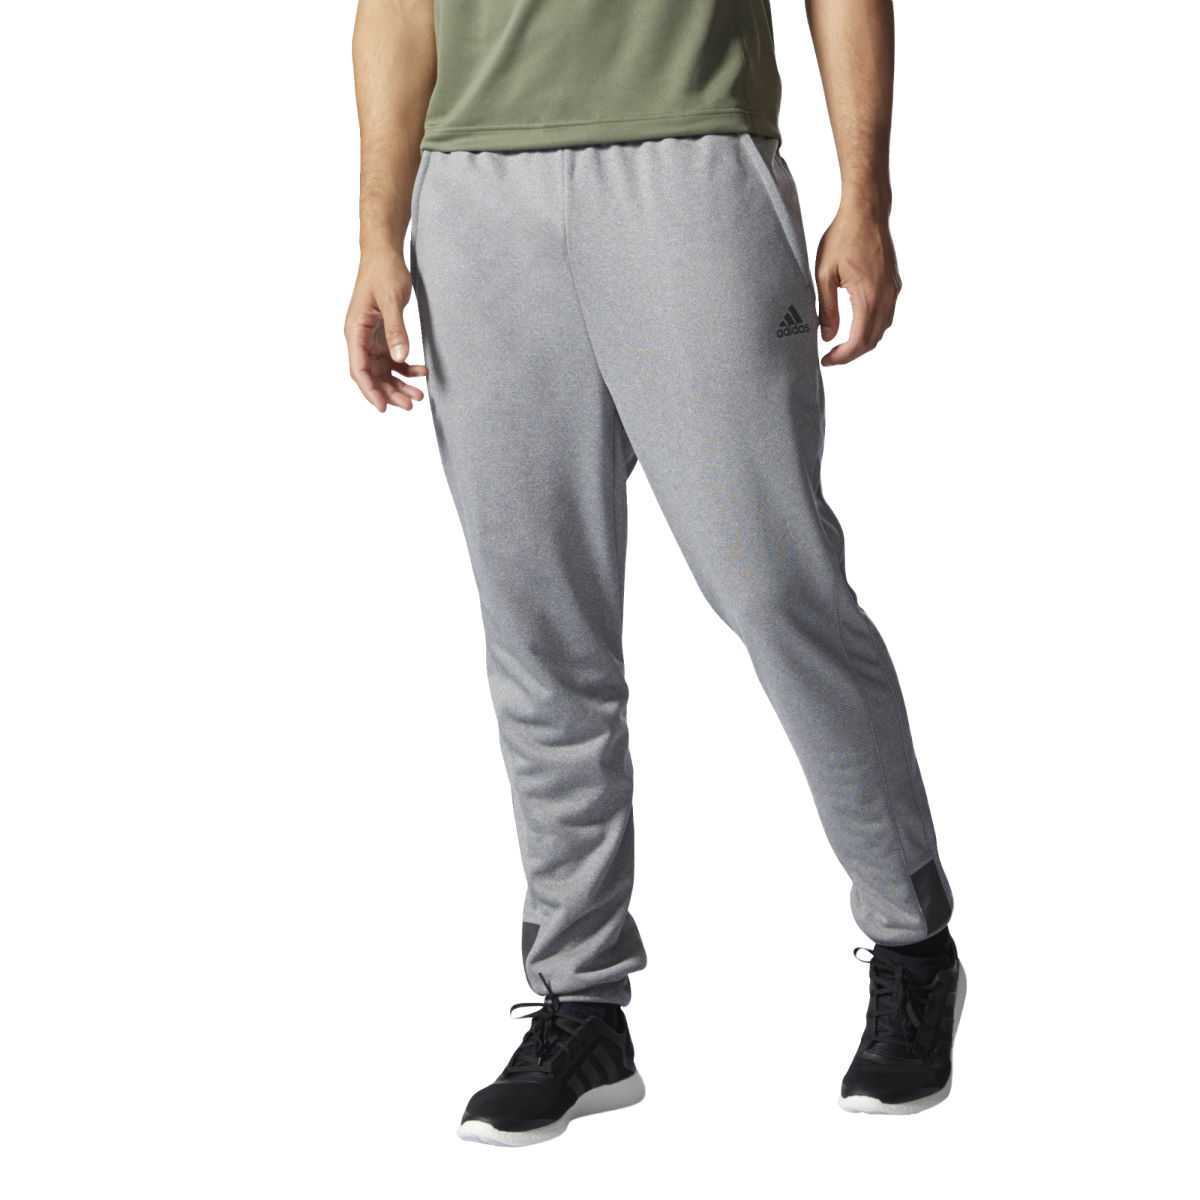 Adidas Beyond The Run Pant (AW16)   Running Trousers